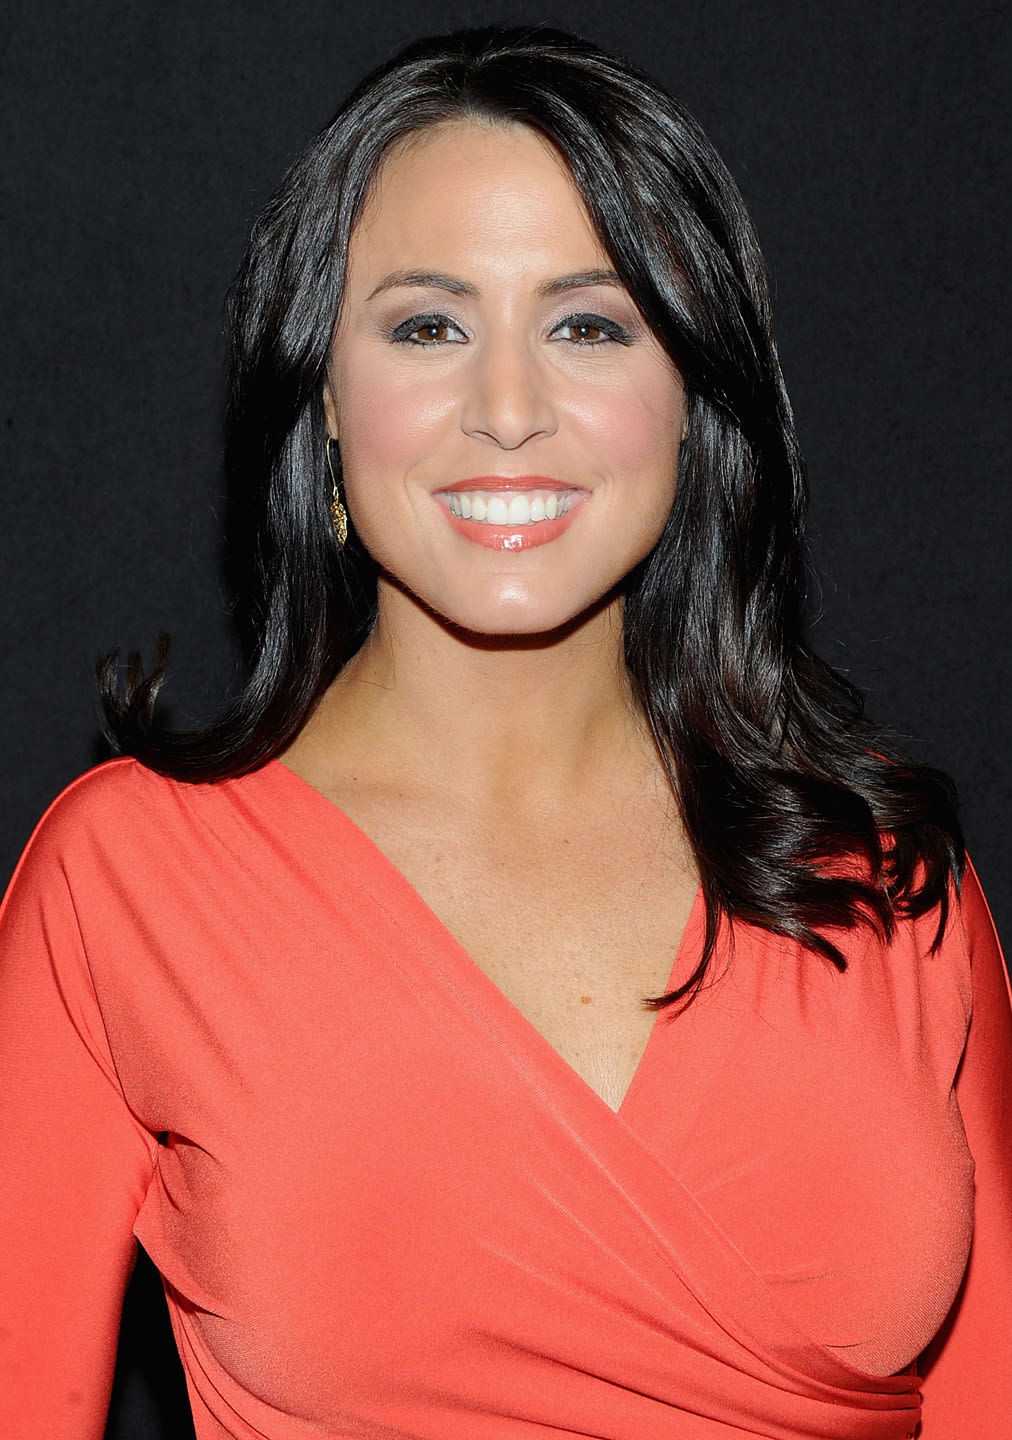 How Foxy Does a Woman Have to Be to Work at Fox News? (PHOTOS)